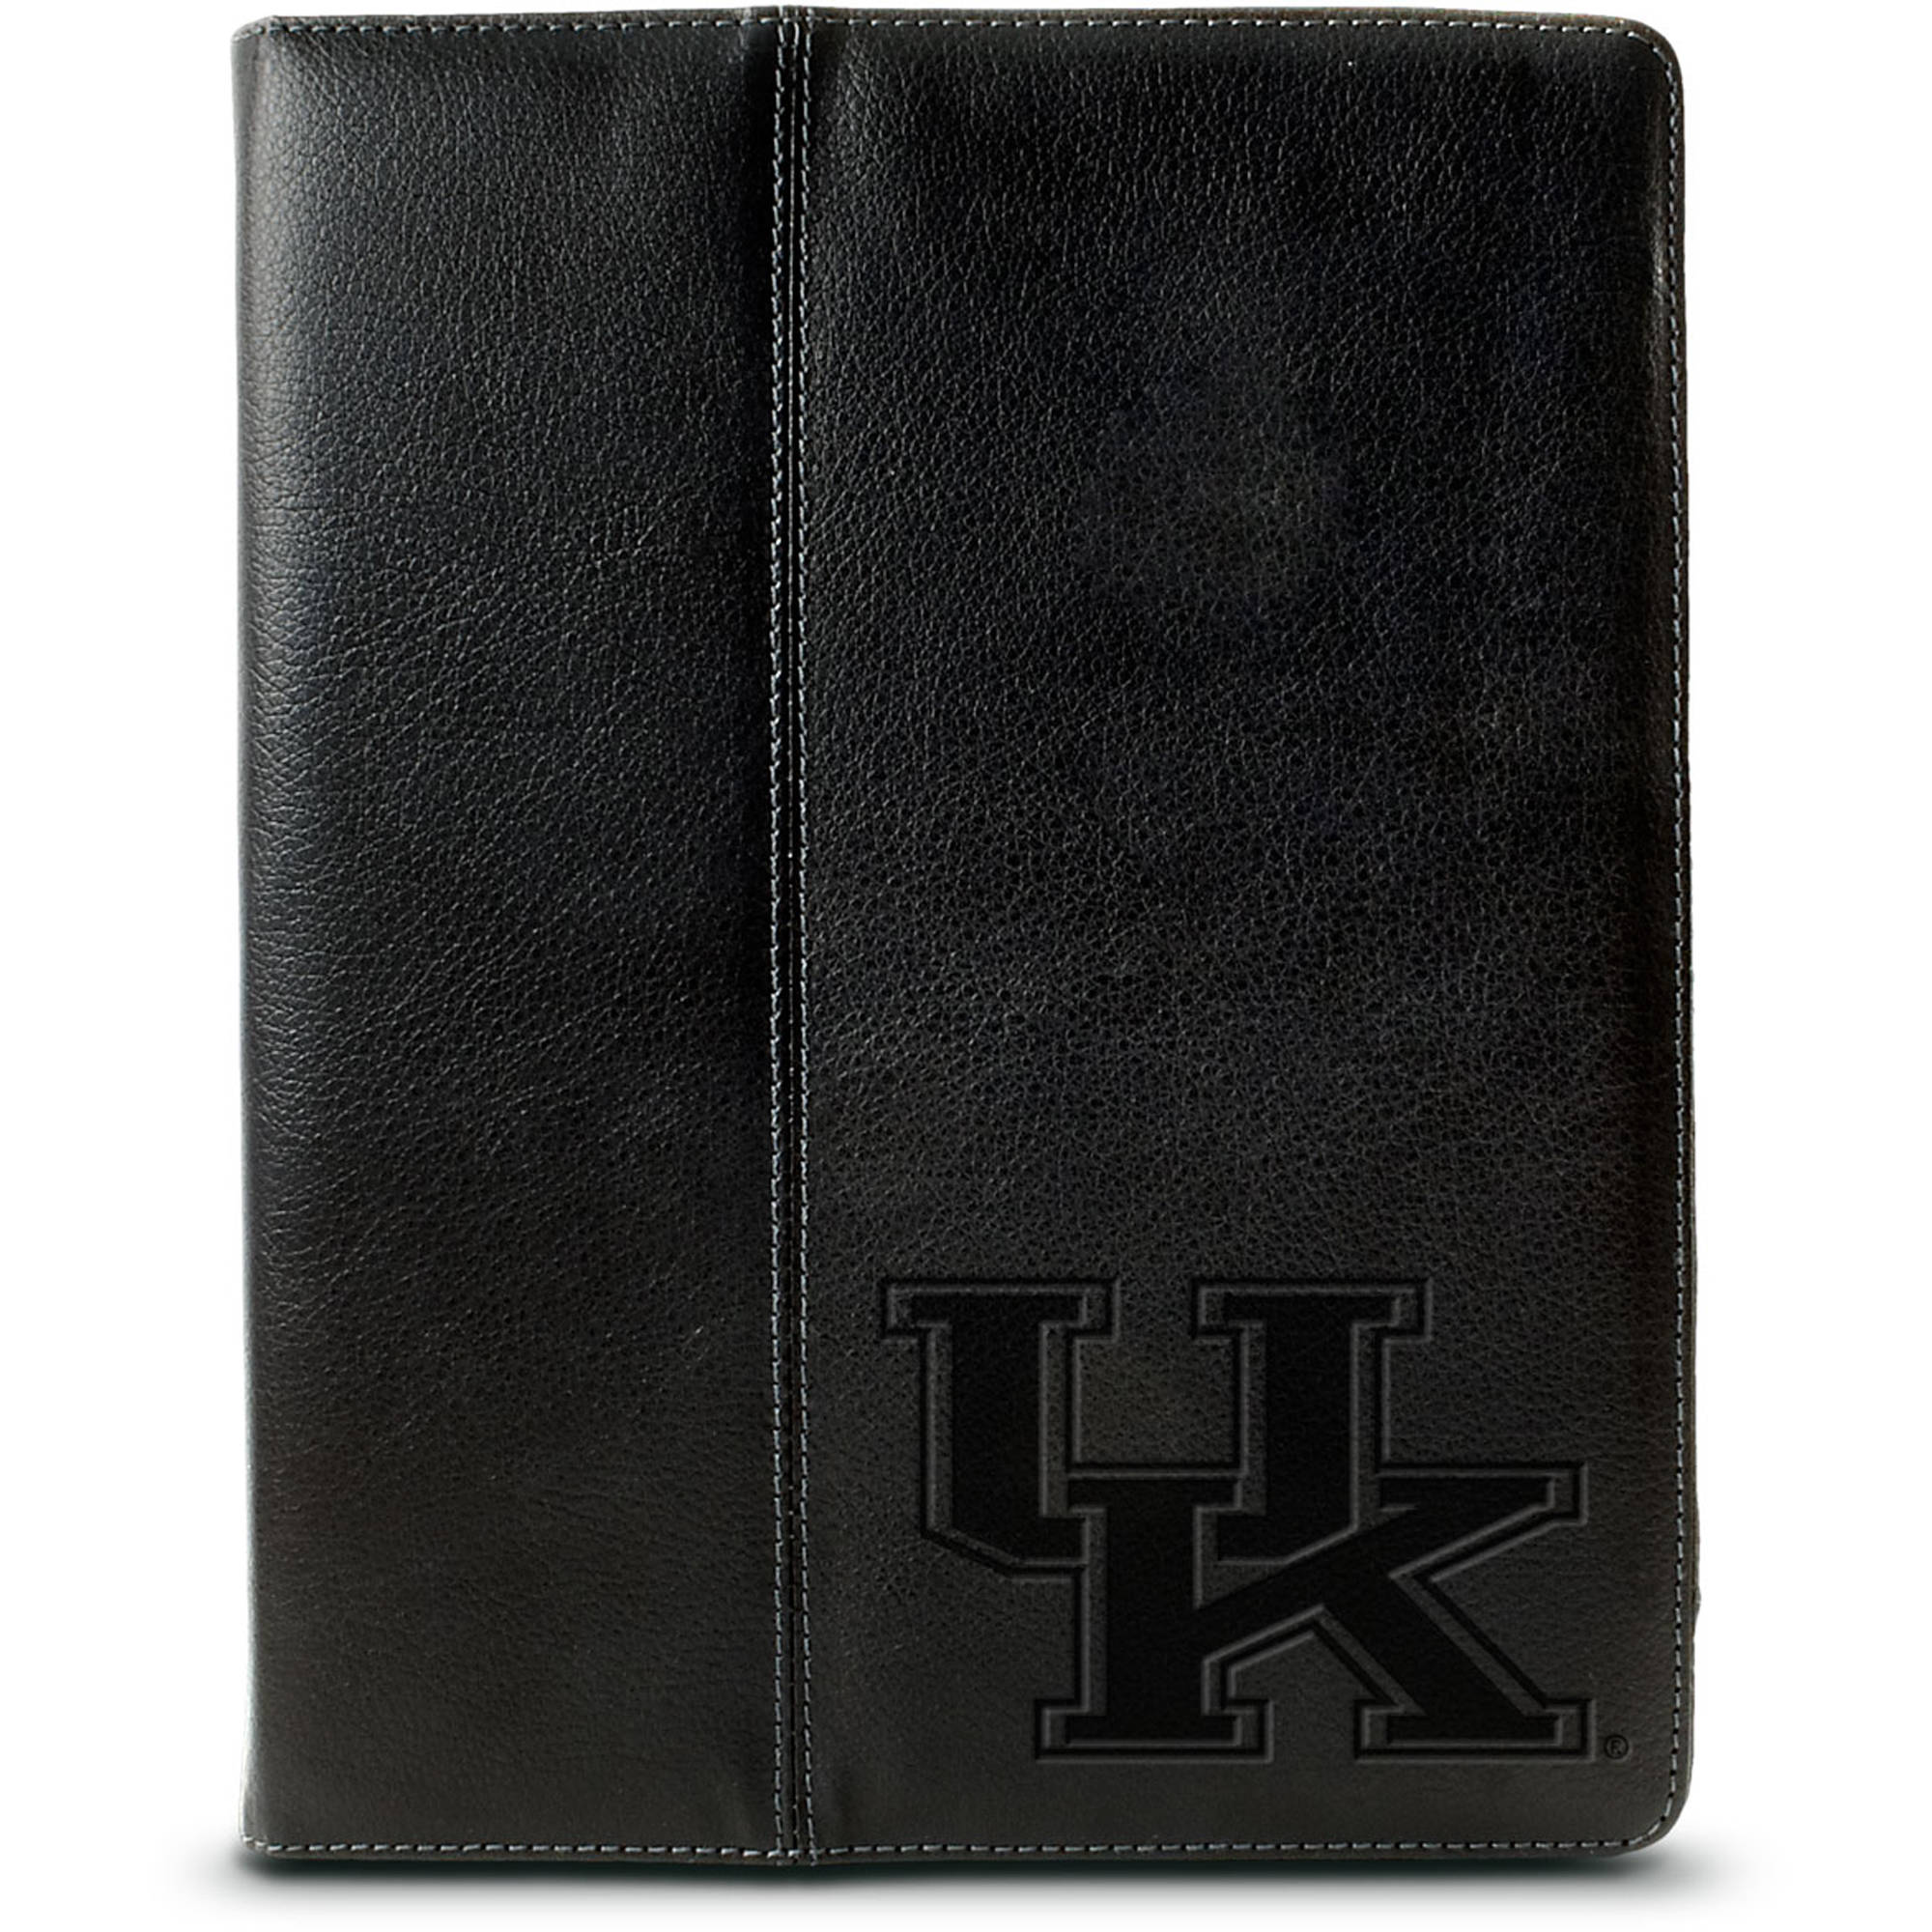 Centon iPad Leather Folio Case University of Kentucky